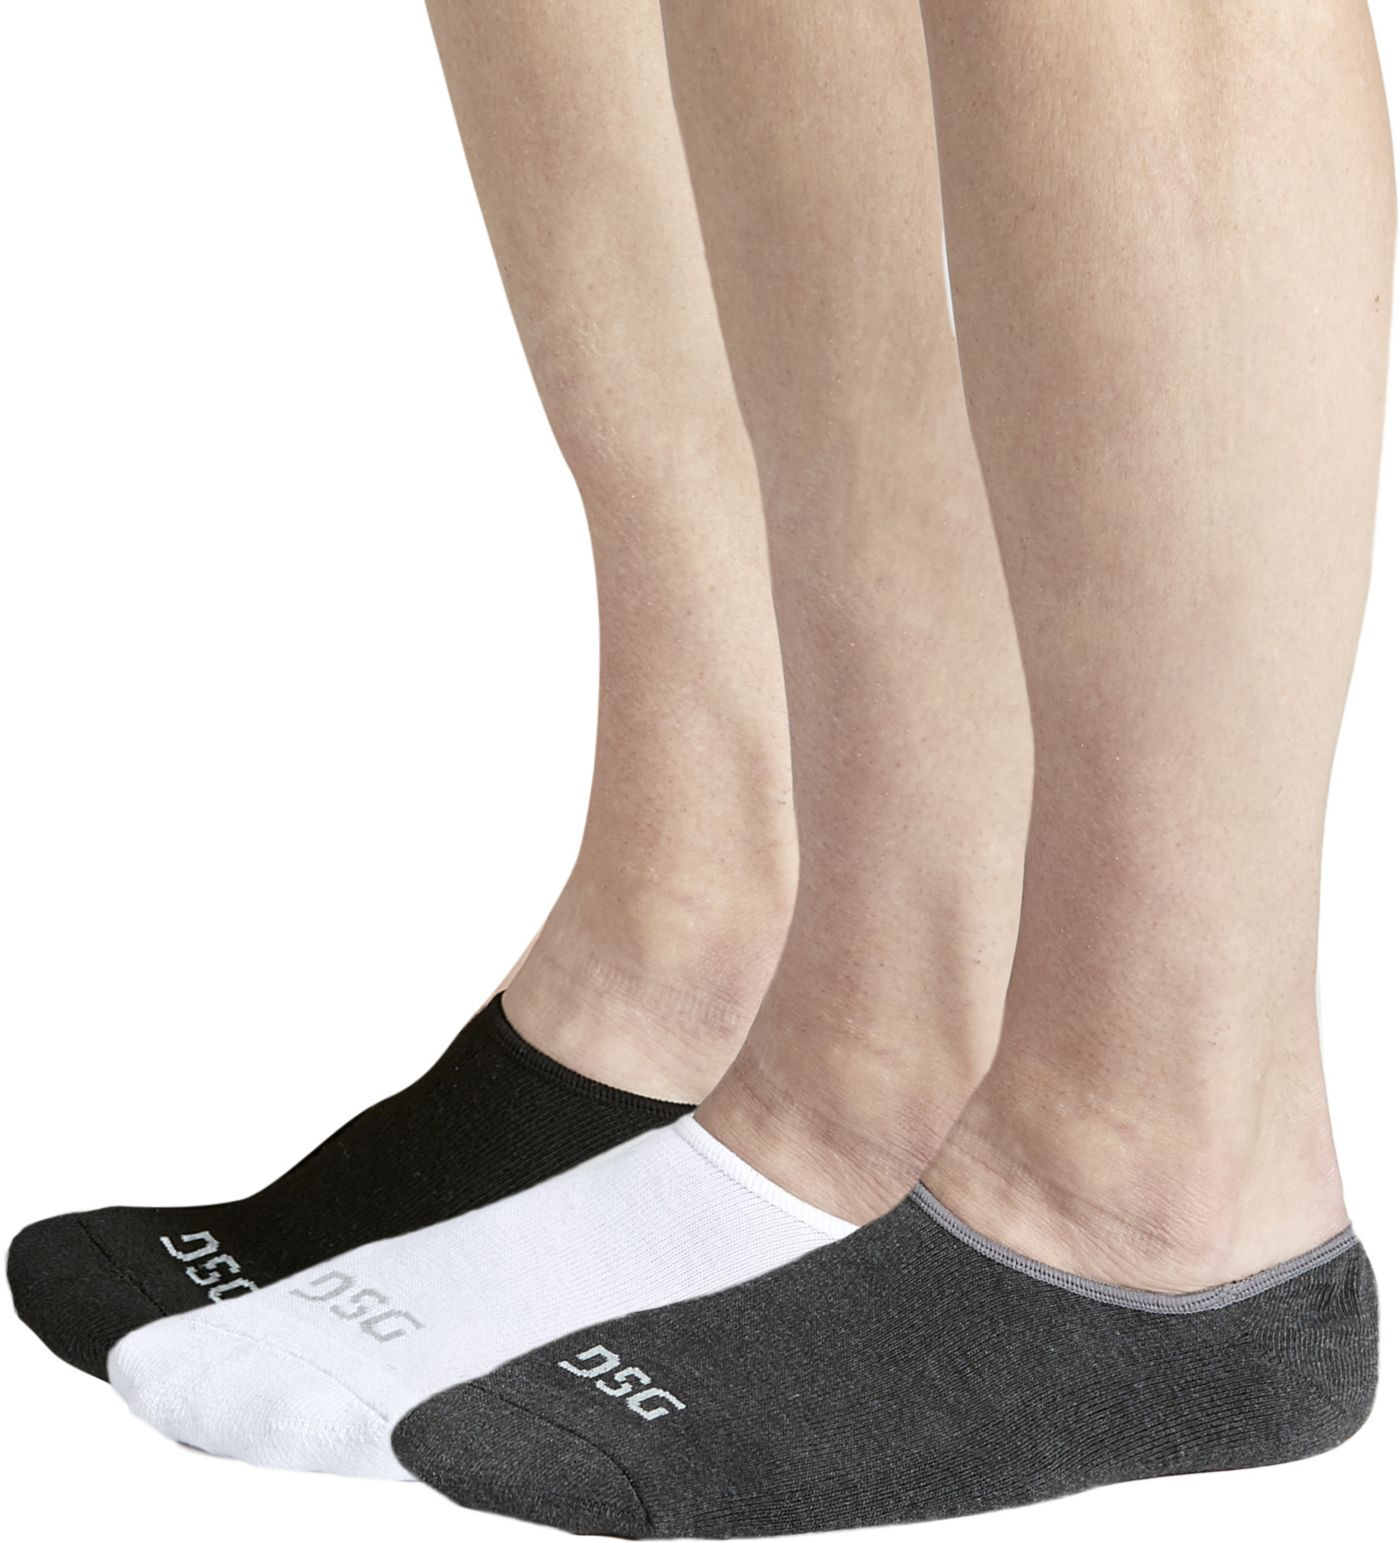 DSG Footie Socks 3 Pack